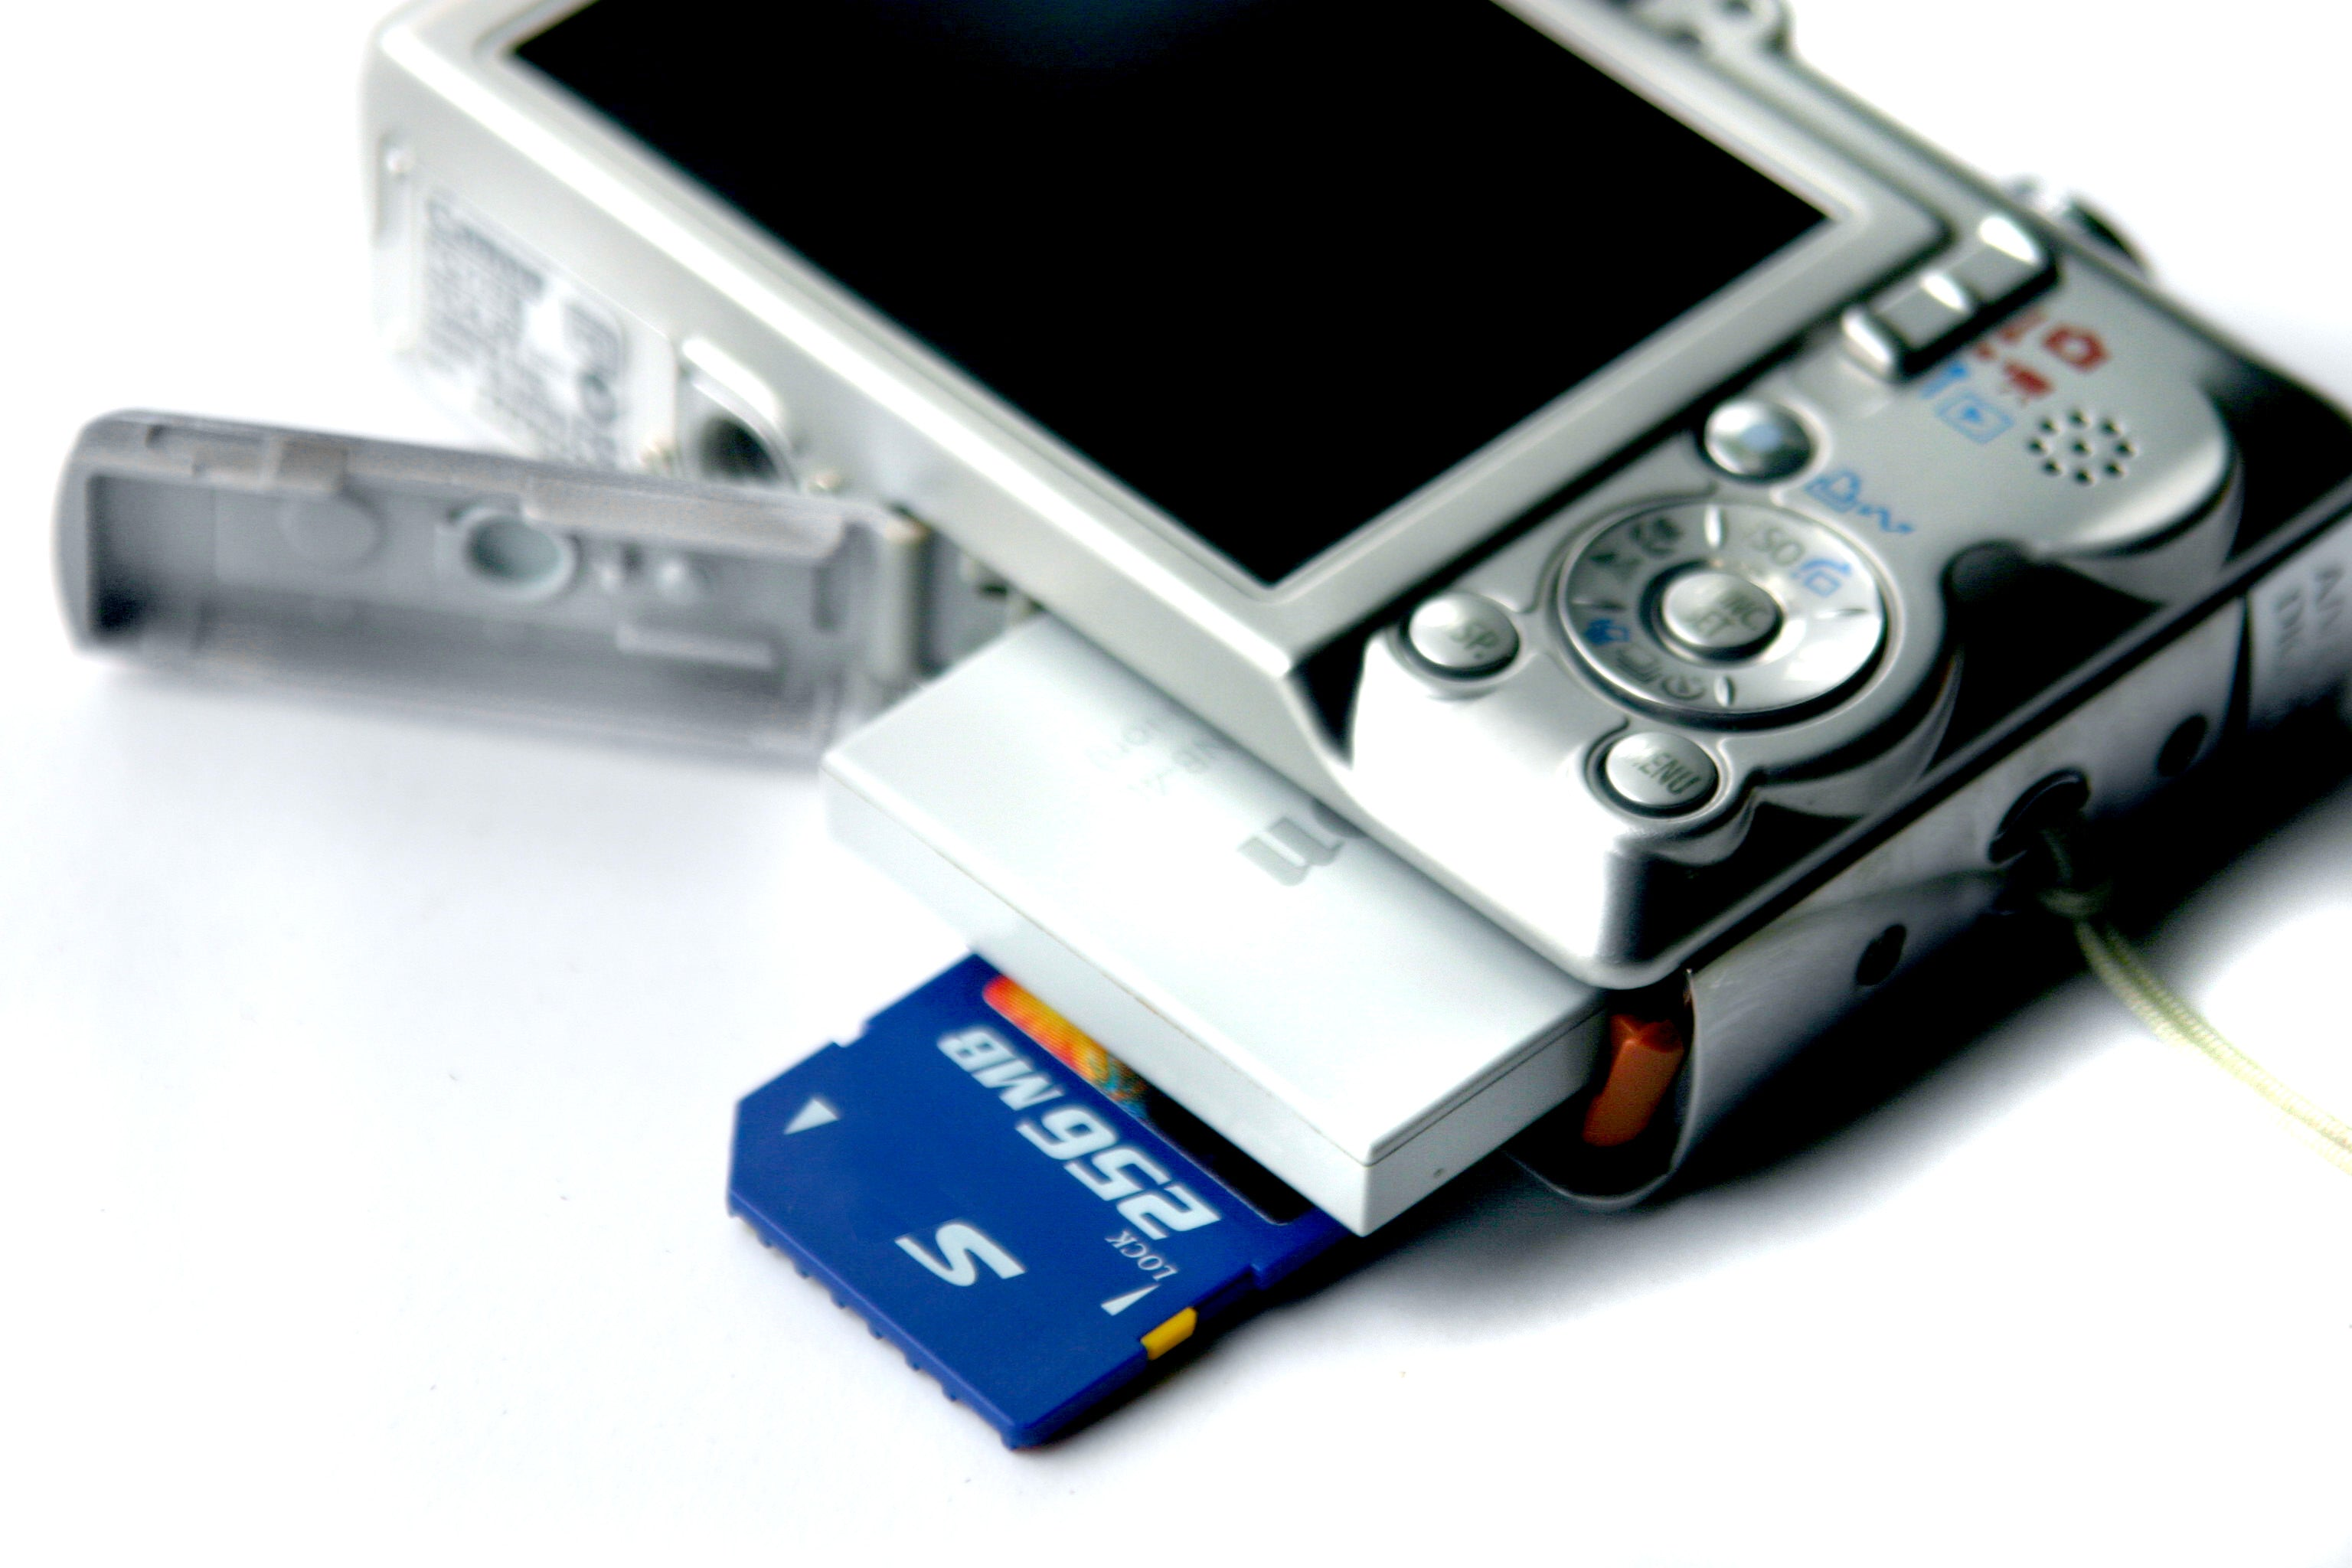 Digital camera with battery and memory card